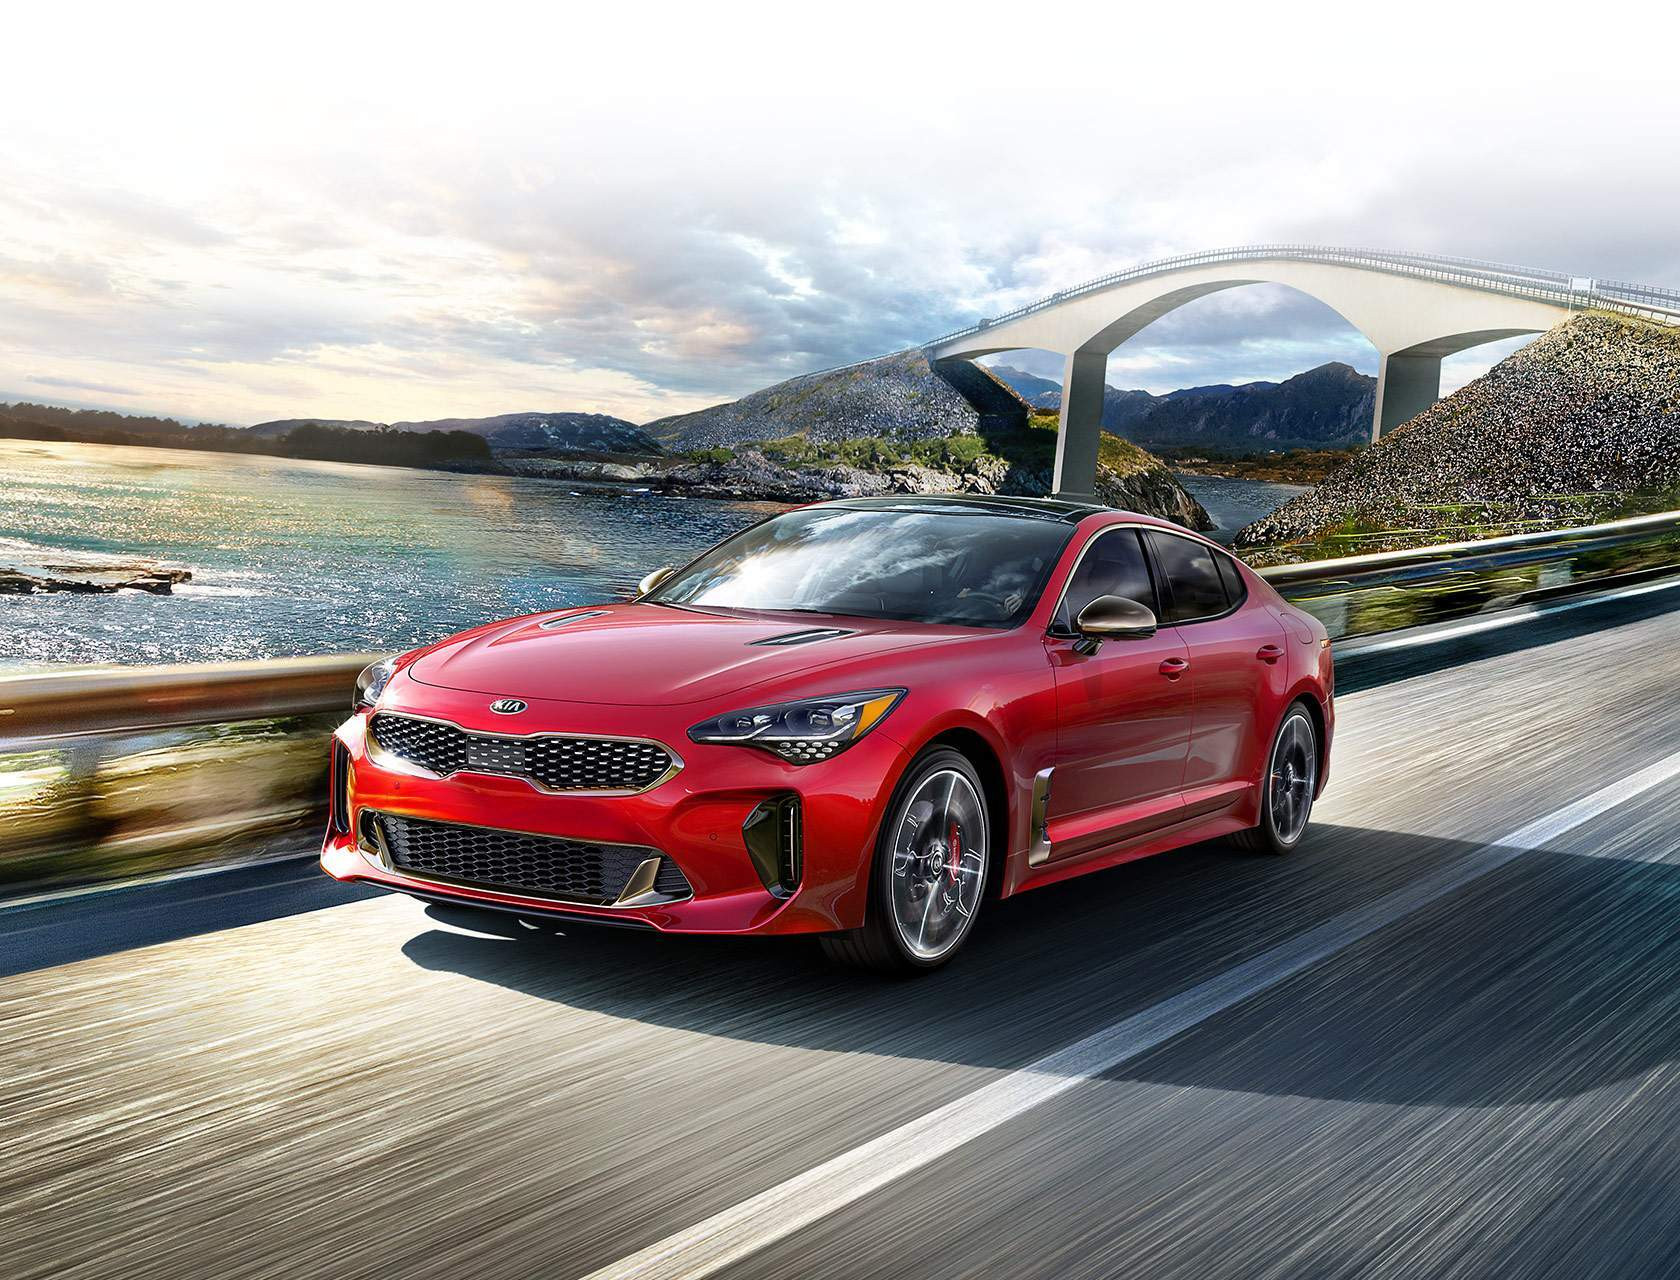 2018 Kia Stinger in Terre Haute, IN